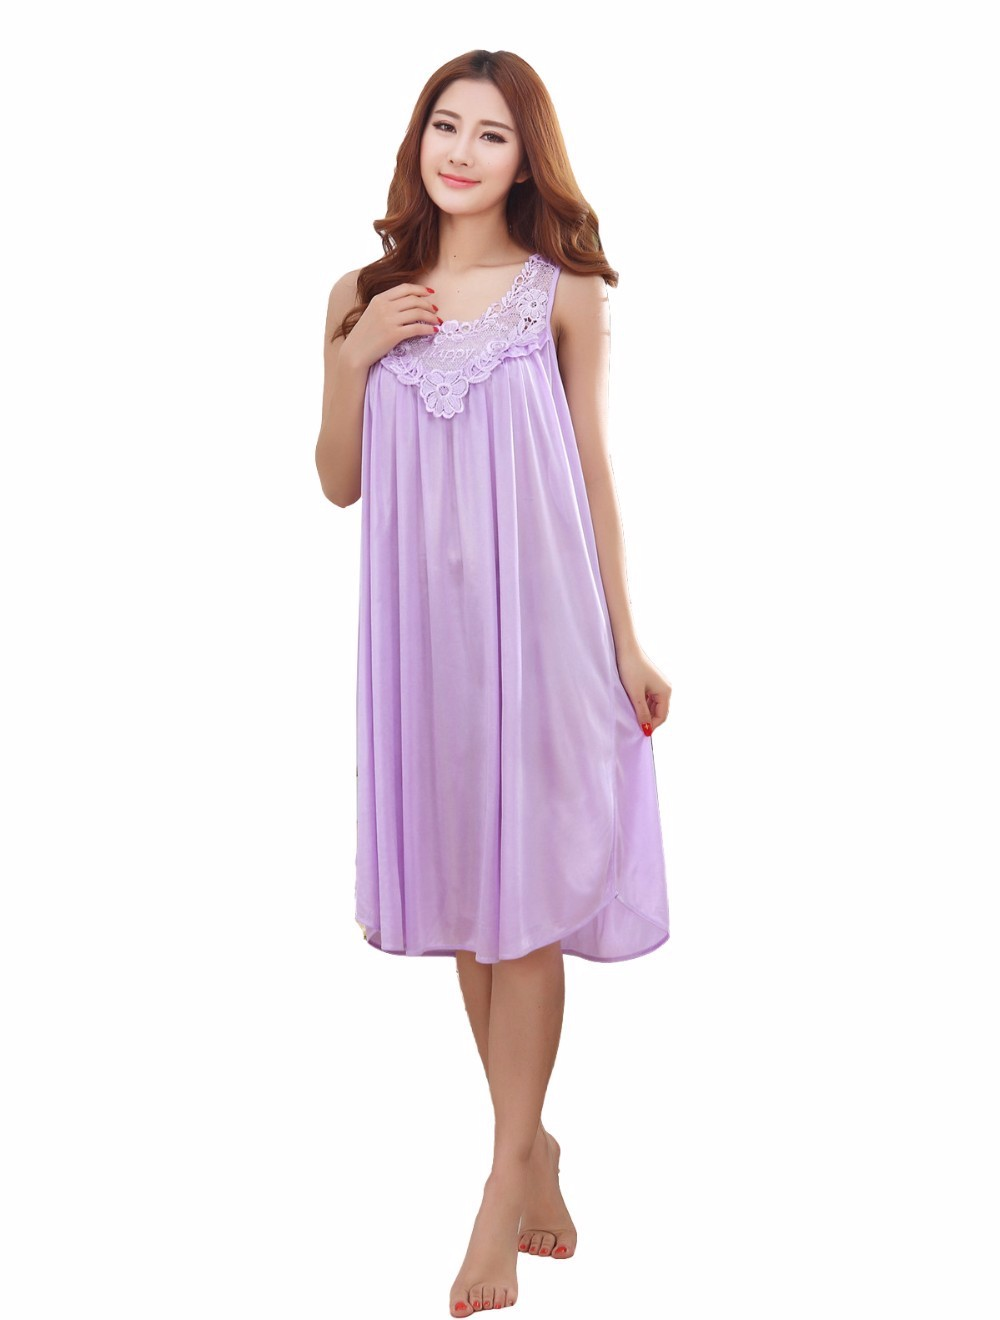 52331243f ... long silk nightgowns nightdress dress for women plus size ladies  lingerie maternity sleepwear dresses pregnant nightwear ...